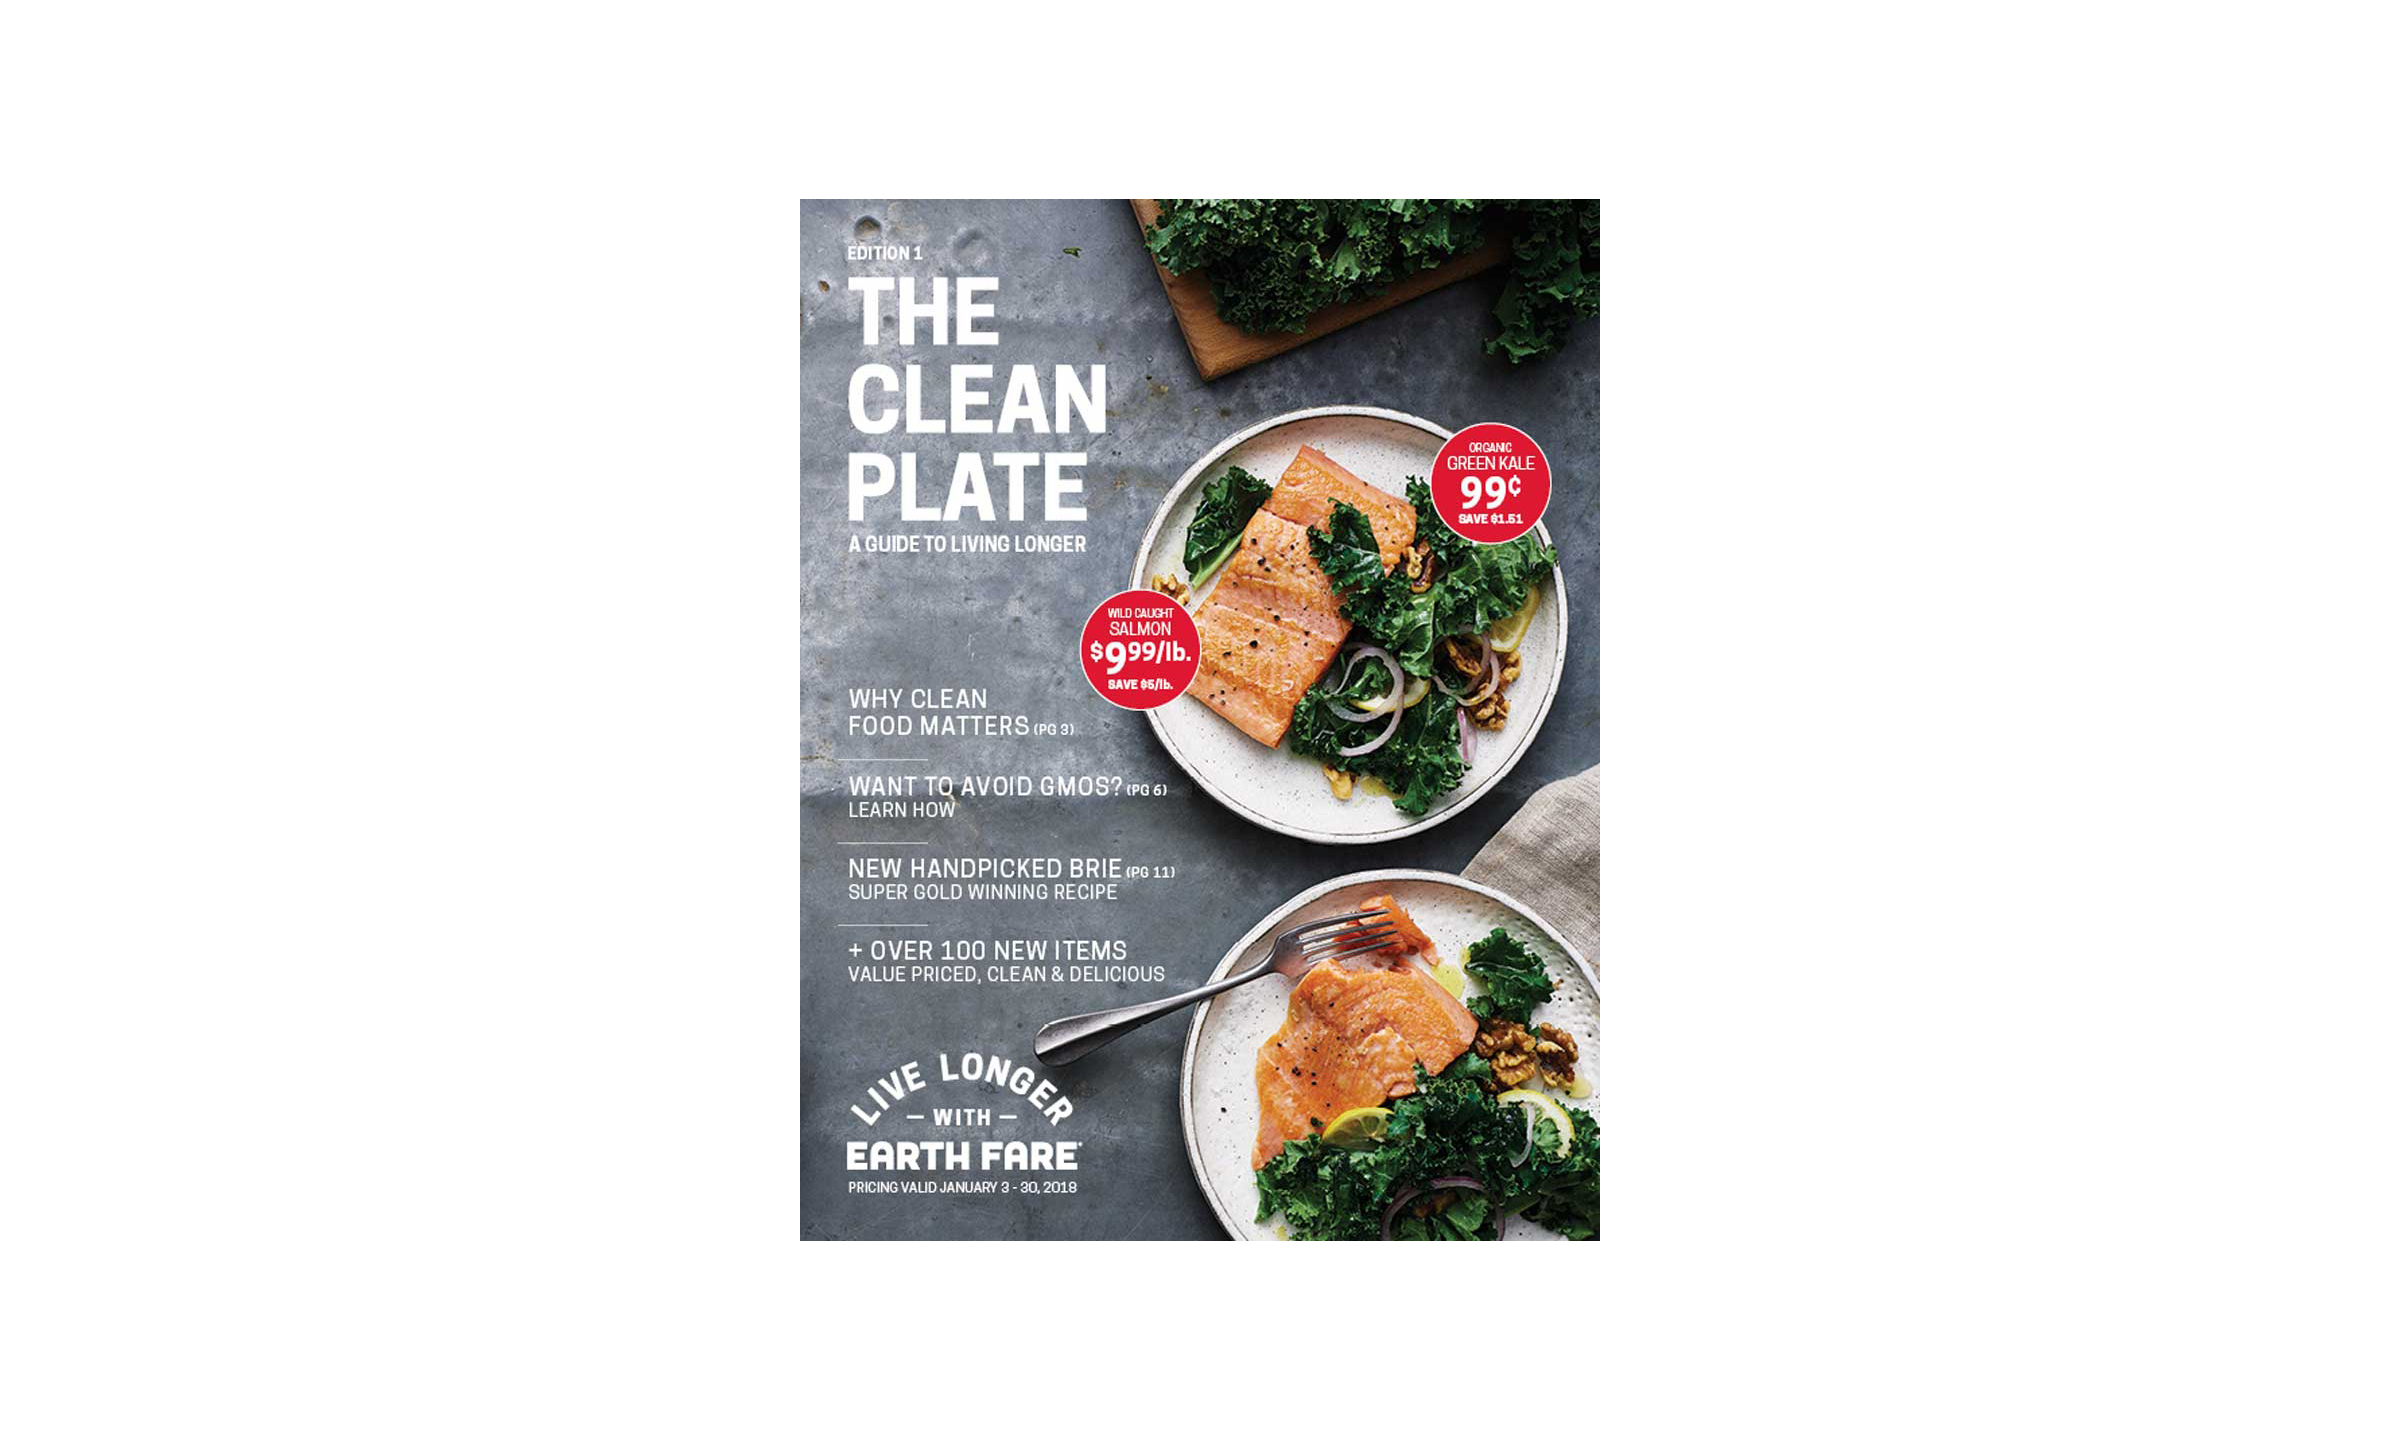 The Clean Plate magazine cover